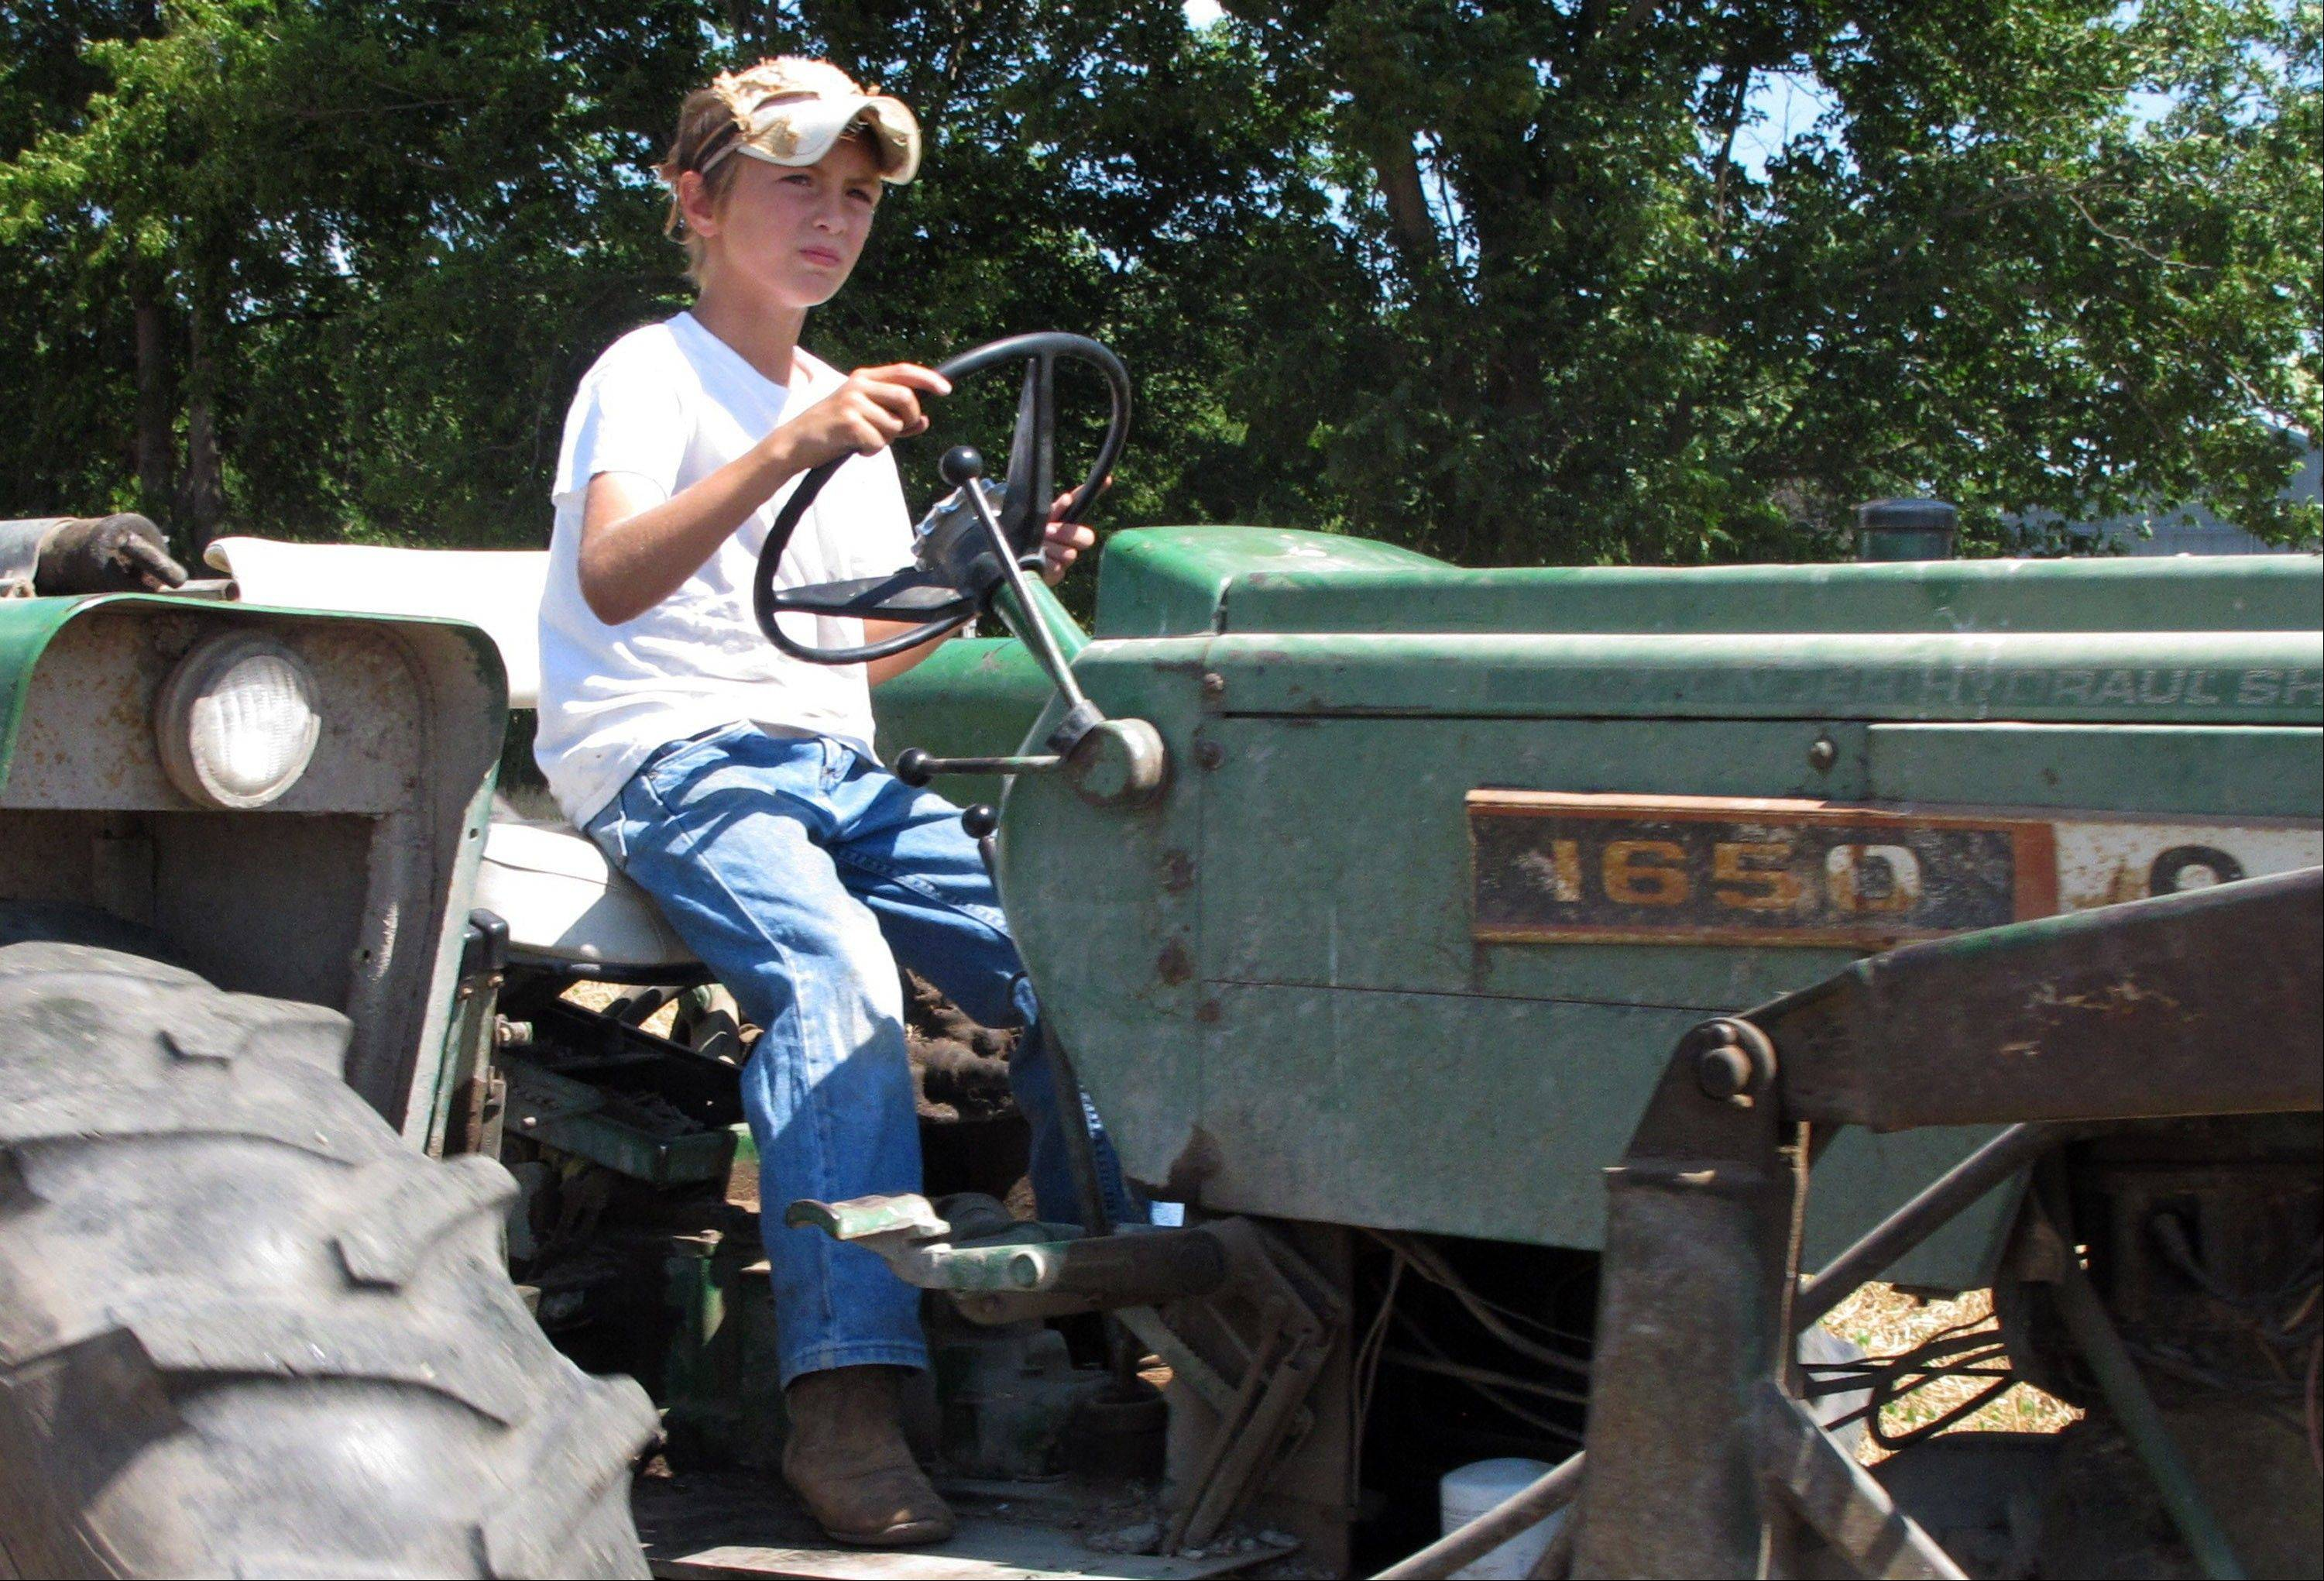 Ten-year-old Jacob Mosbacher guides a tractor through a bean field on his grandparents' property near Fults, Ill.